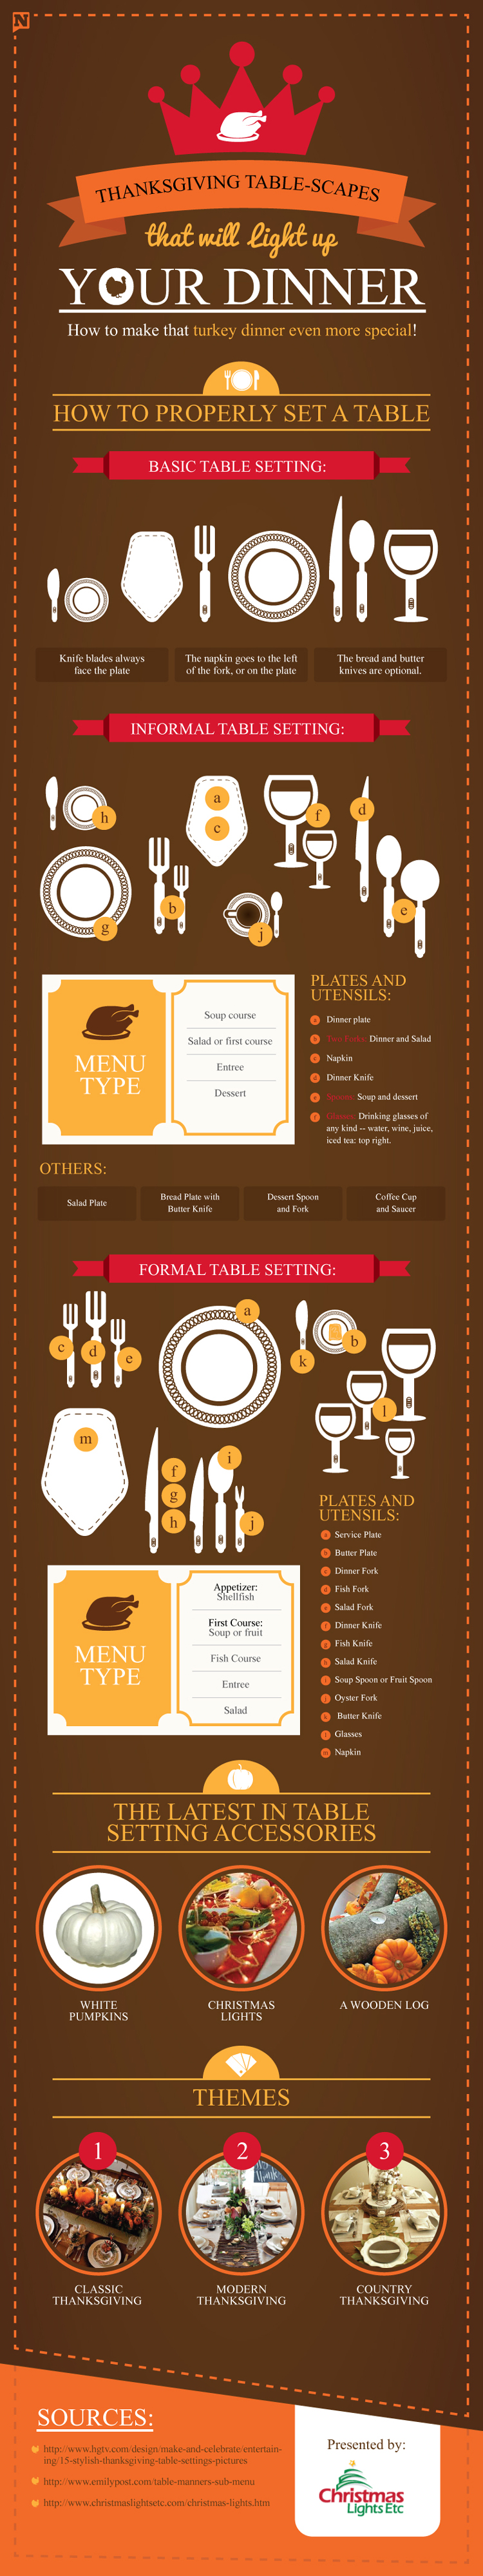 table-setting-guide-for-thanksgiving